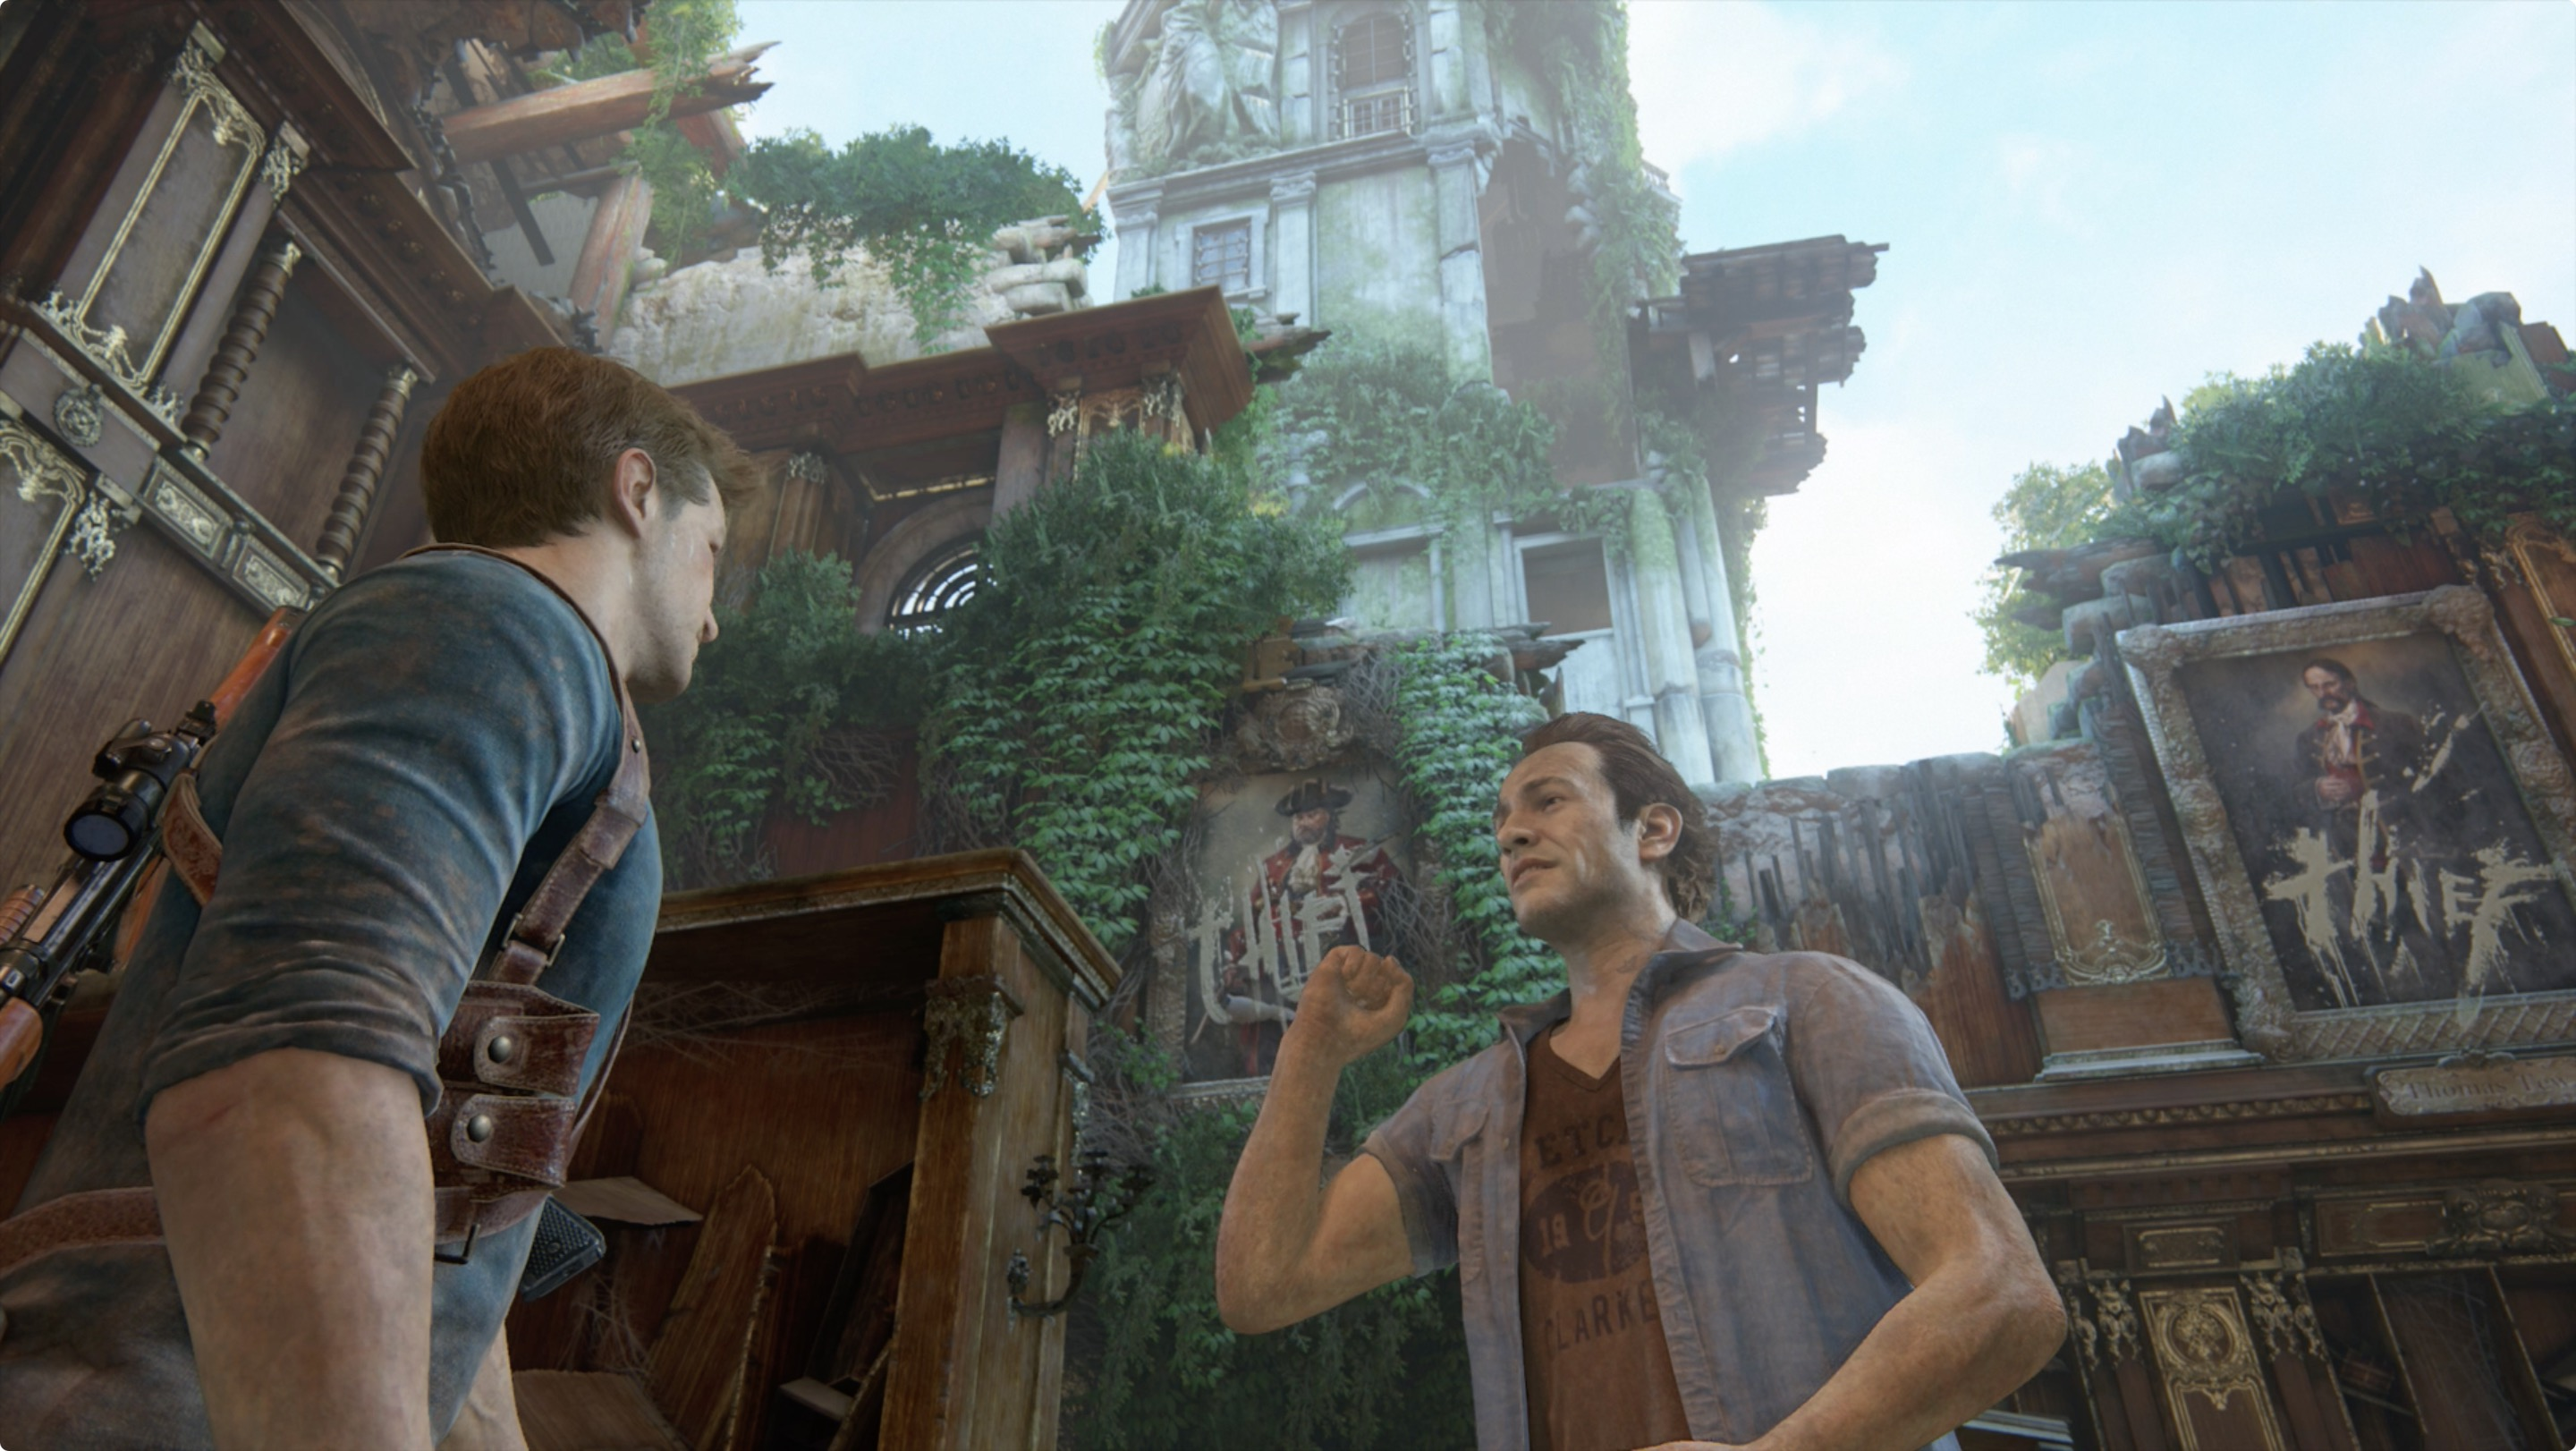 Uncharted 4: A Thief's End 'The Thieves of Libertalia' treasures and collectibles locations guide